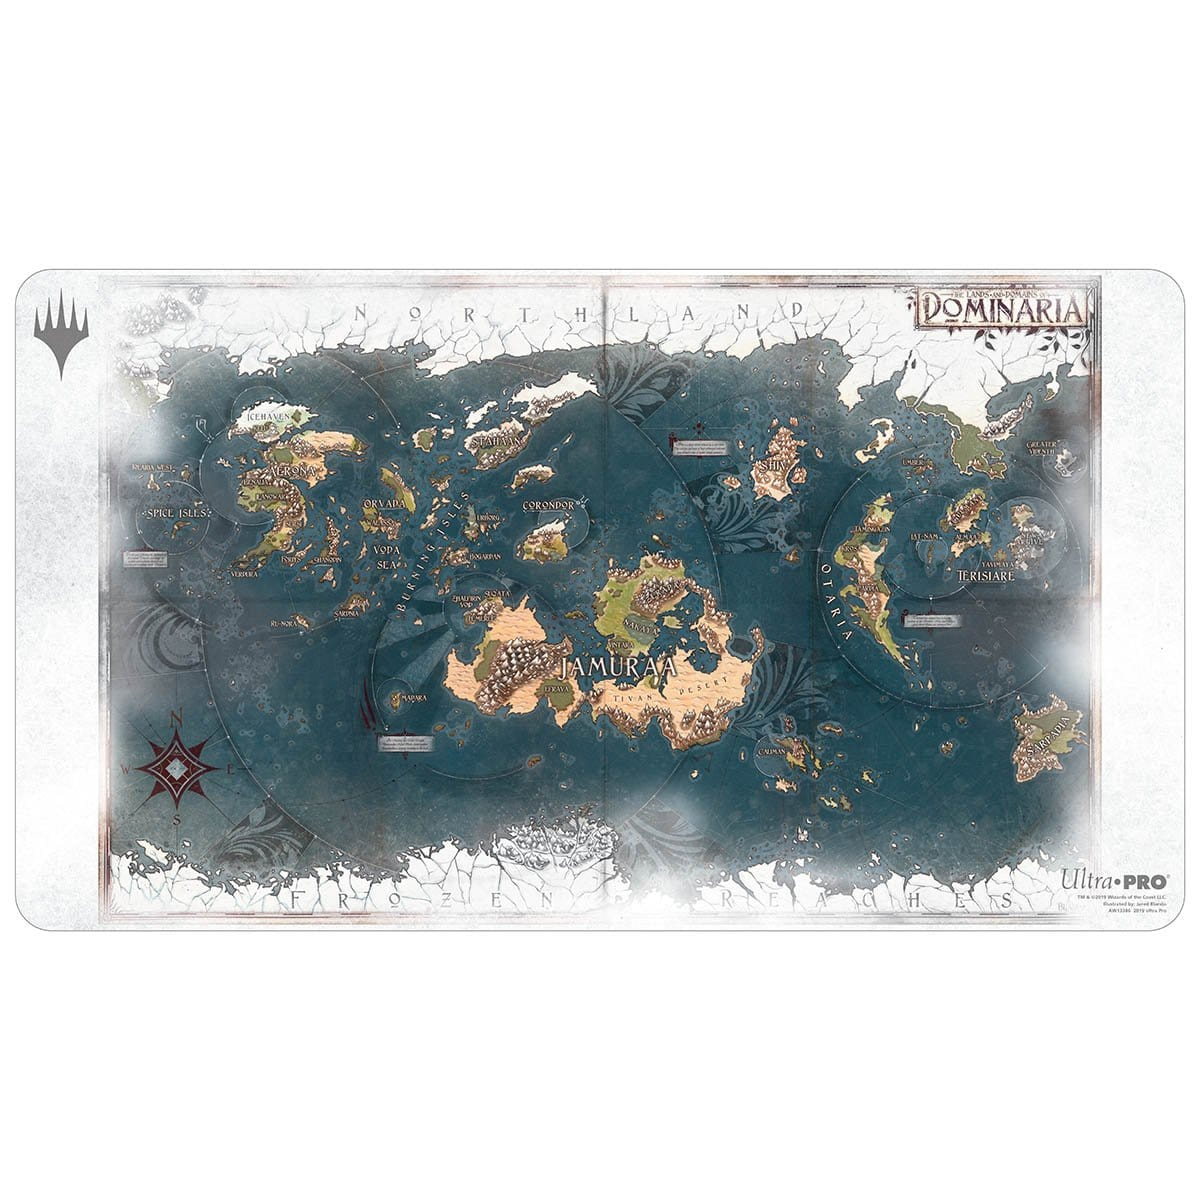 Dominaria Map Playmat - Playmat - Original Magic Art - Accessories for Magic the Gathering and other card games